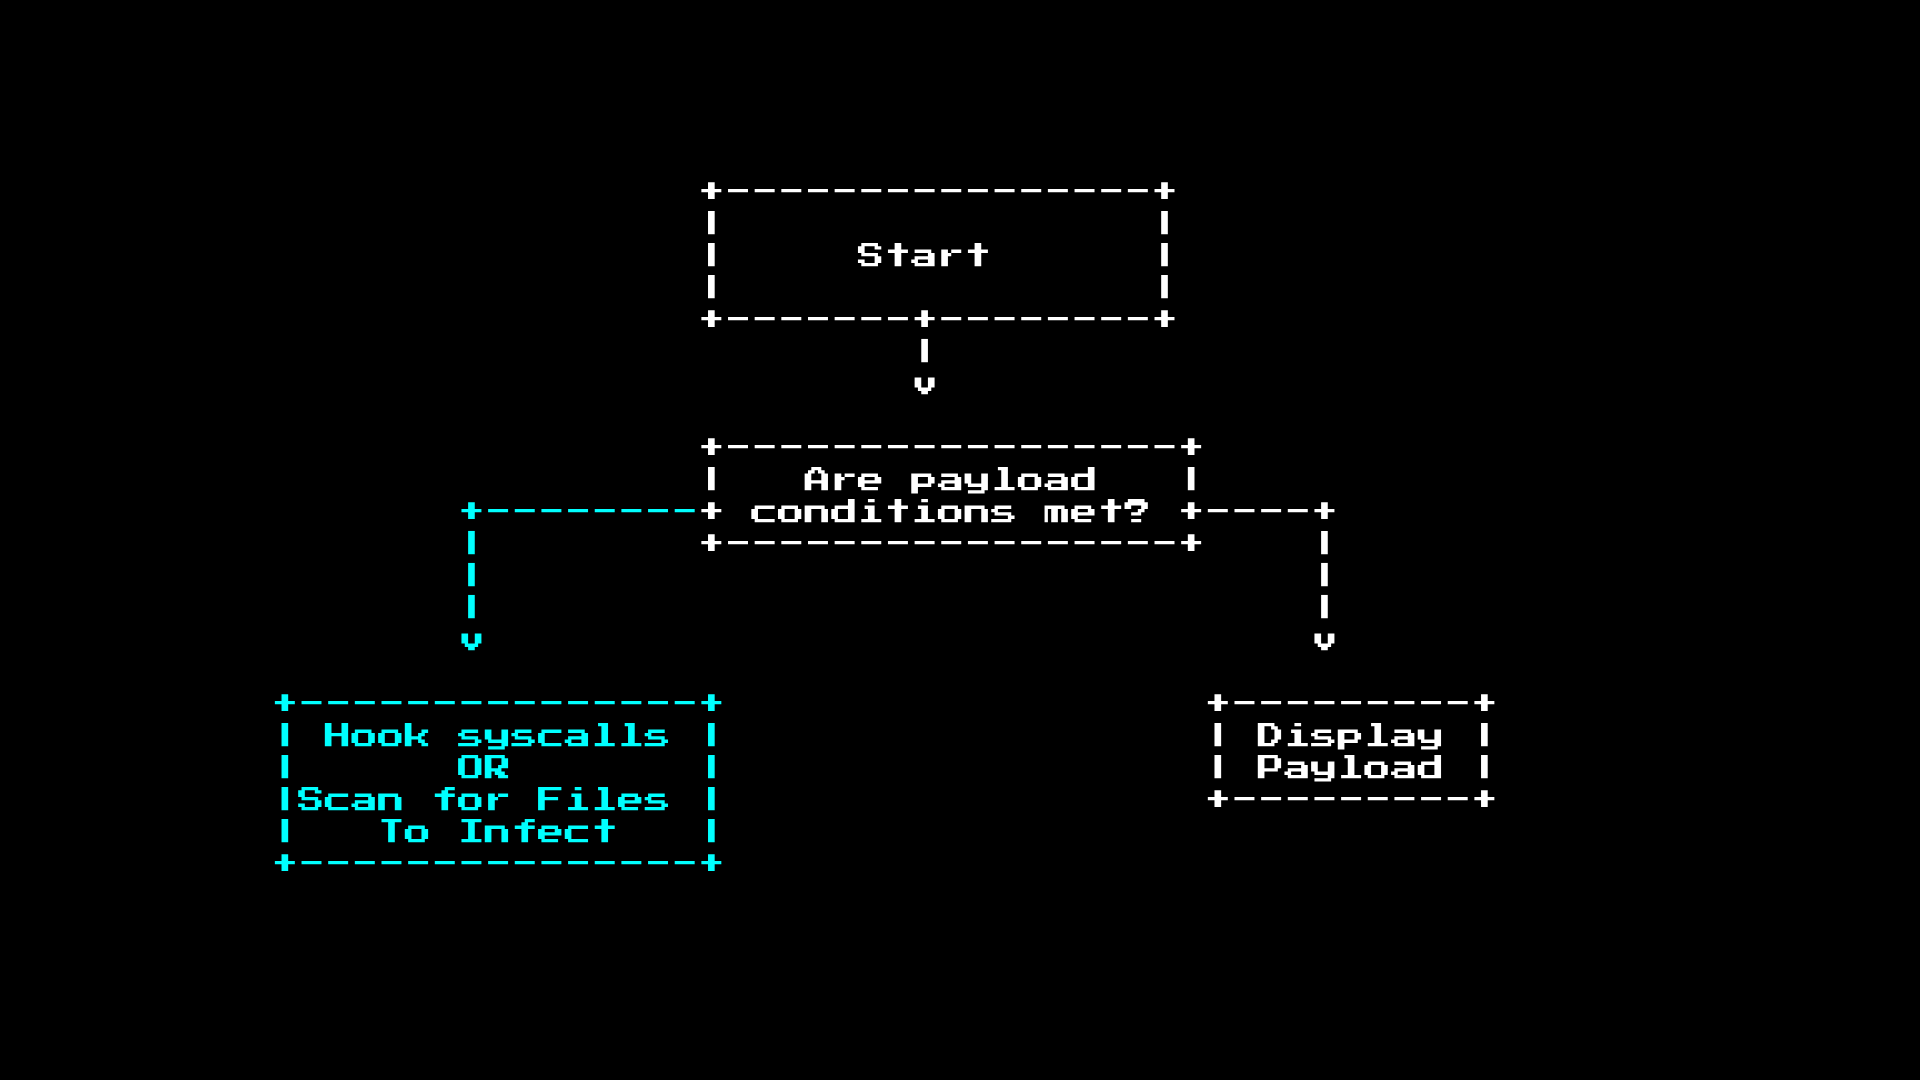 malware desision tree, infect highlighted